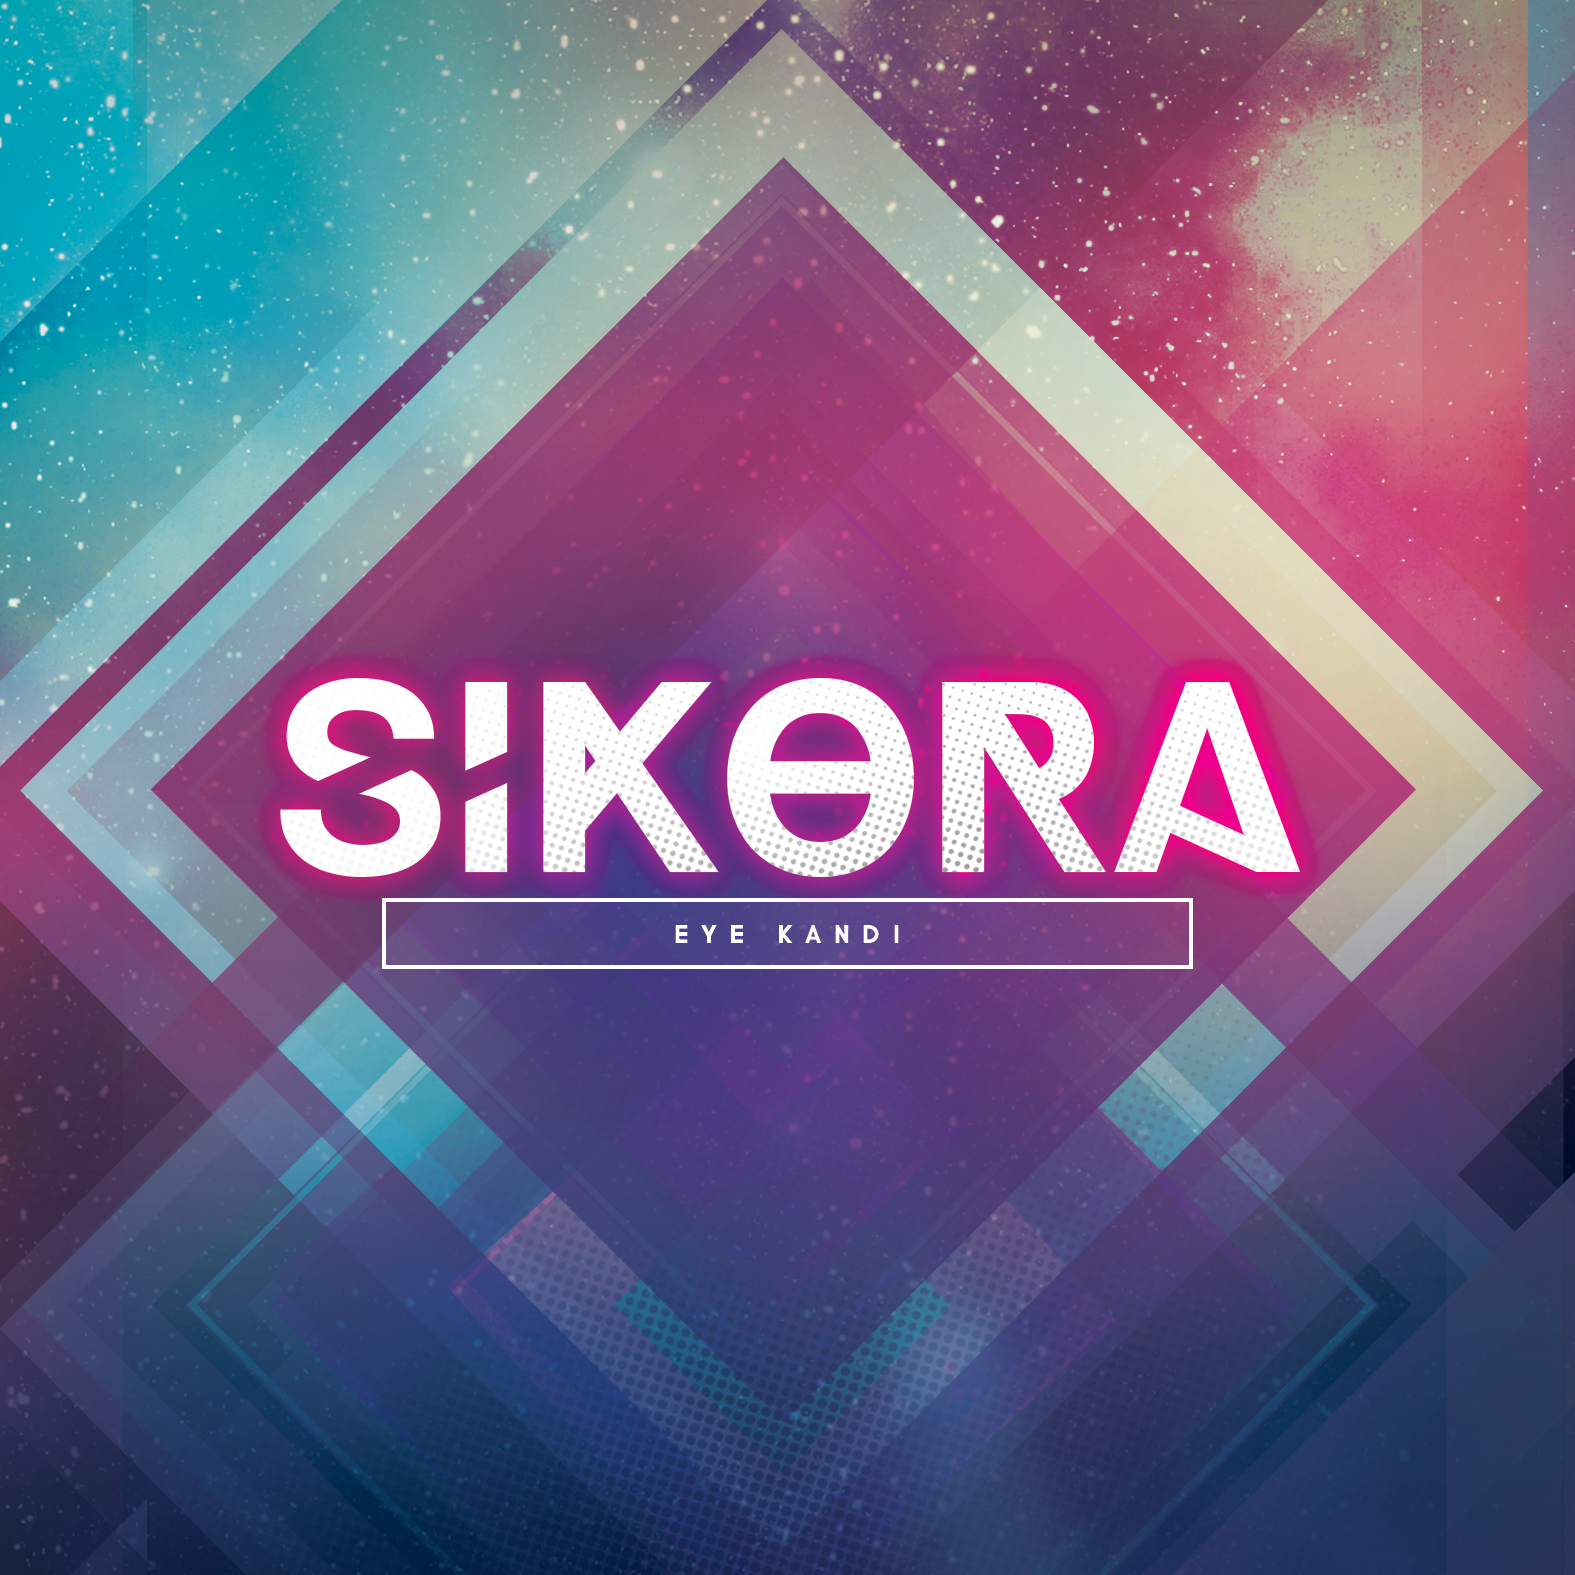 Sikora - EYE KANDI EP - now on iTunes